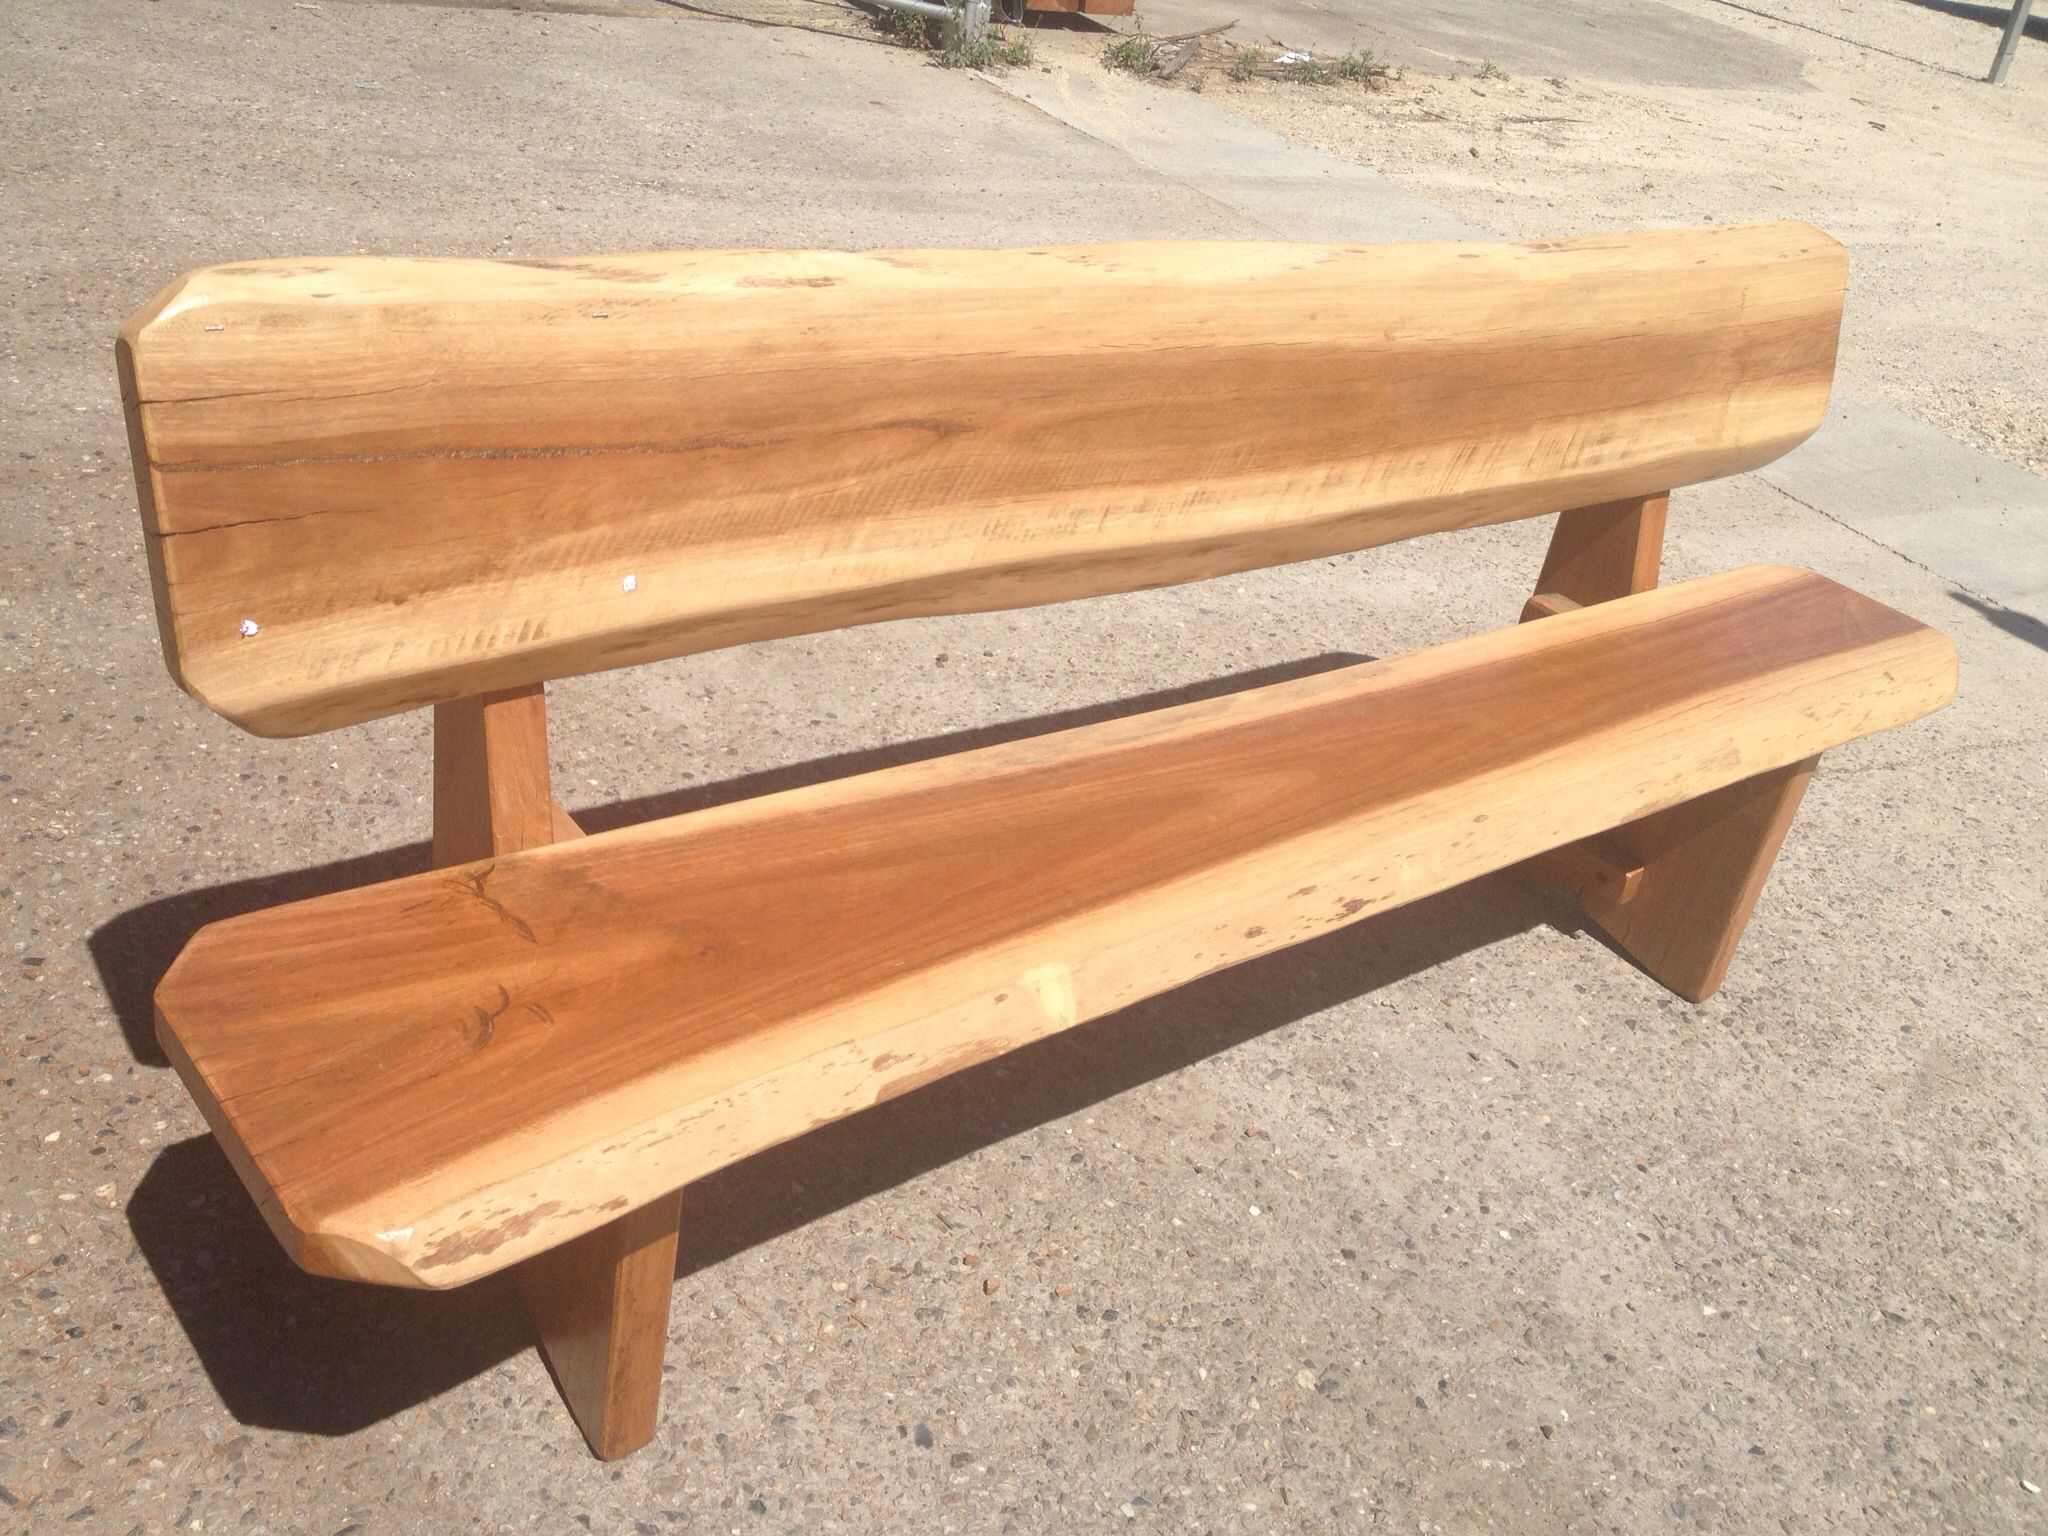 Hardwood Slab Garden Seats 1900 mm long coated for external use in